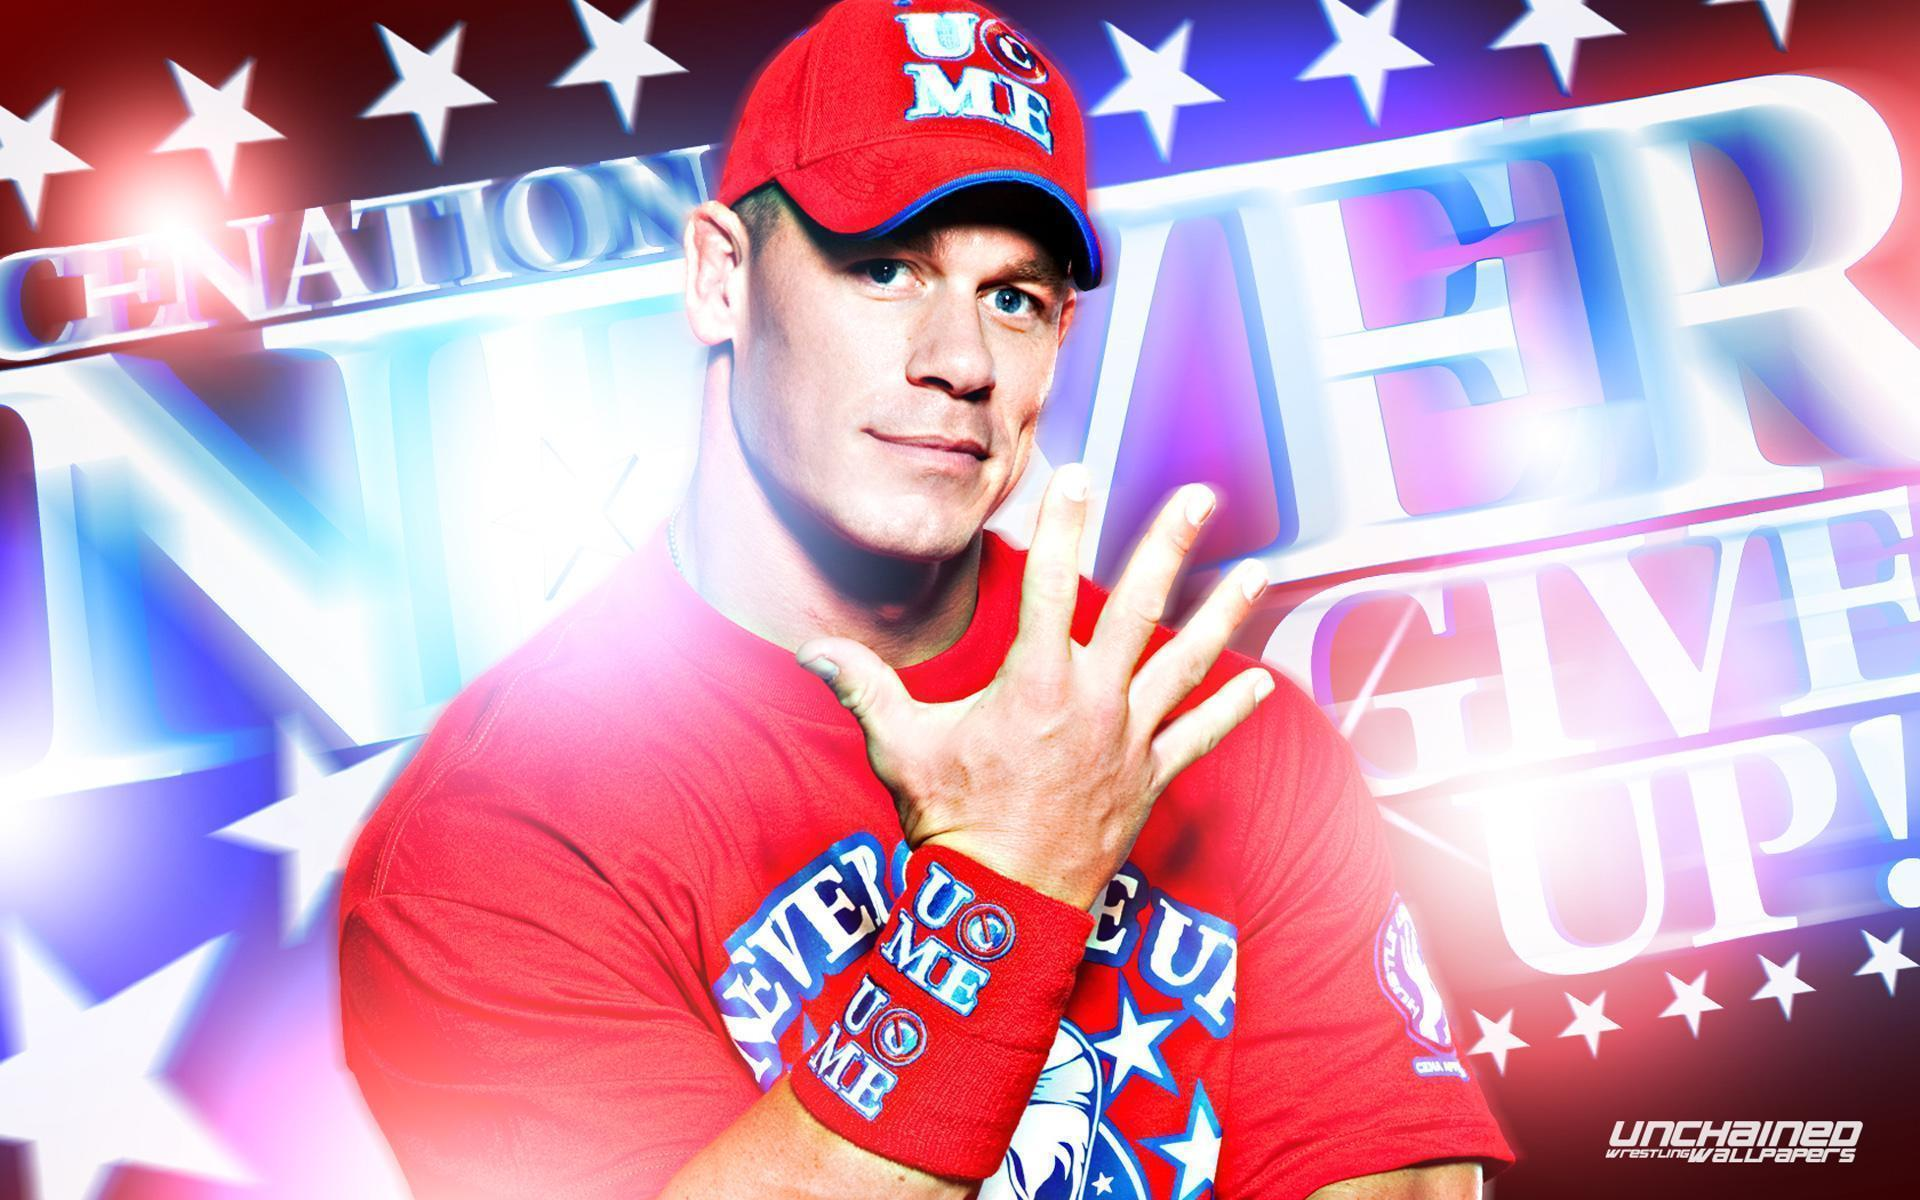 wwe wallpaper 1280x1024 jhone chena - photo #6